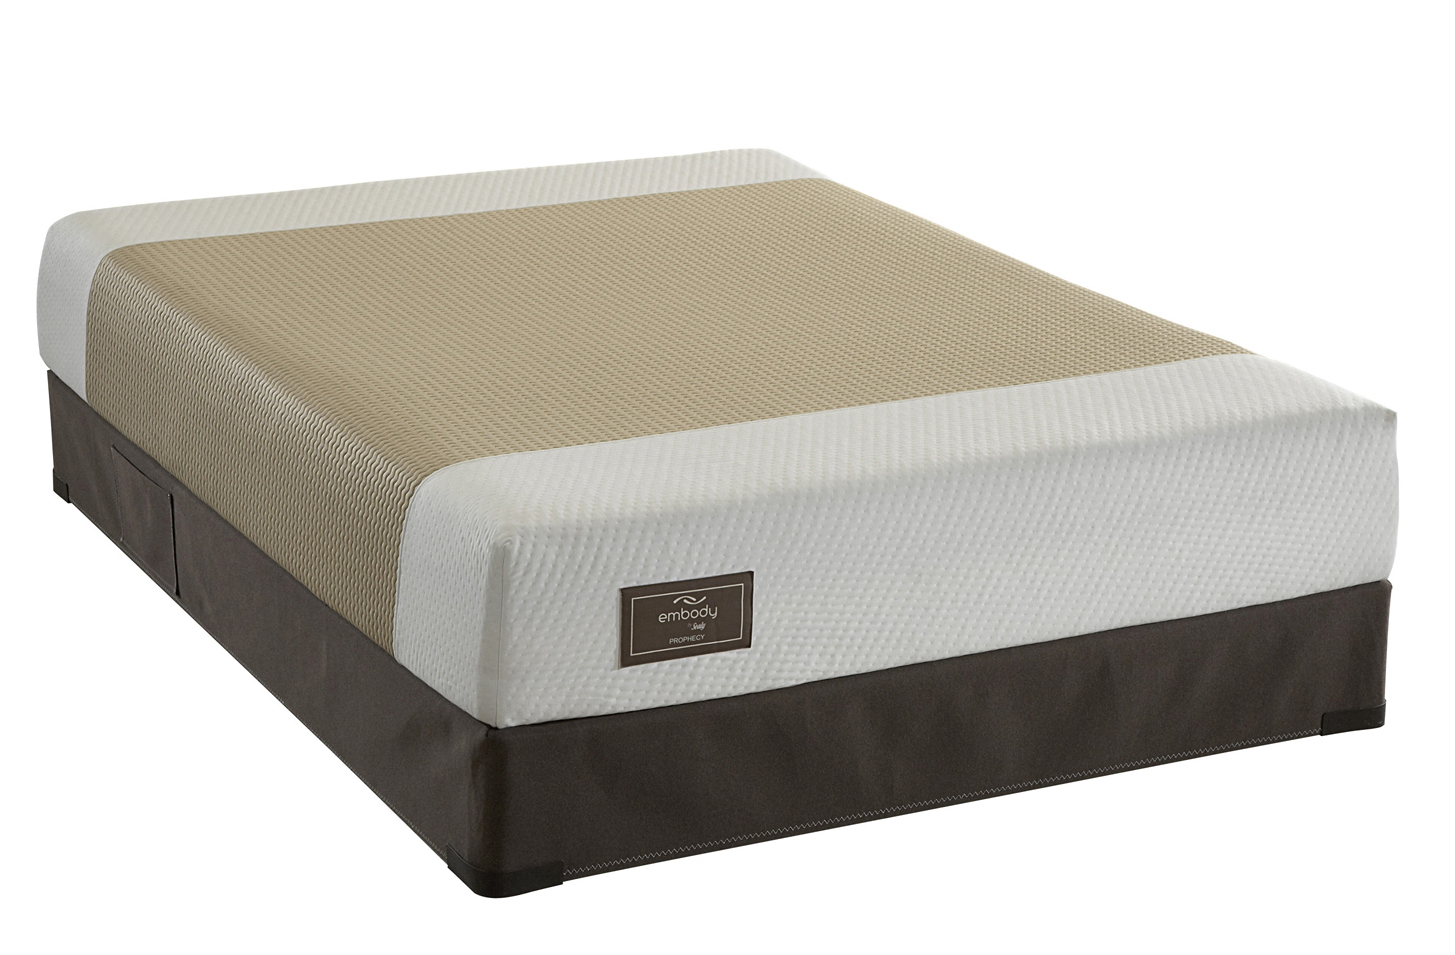 Embody By Sealy Motivation Memory Foam Mattress